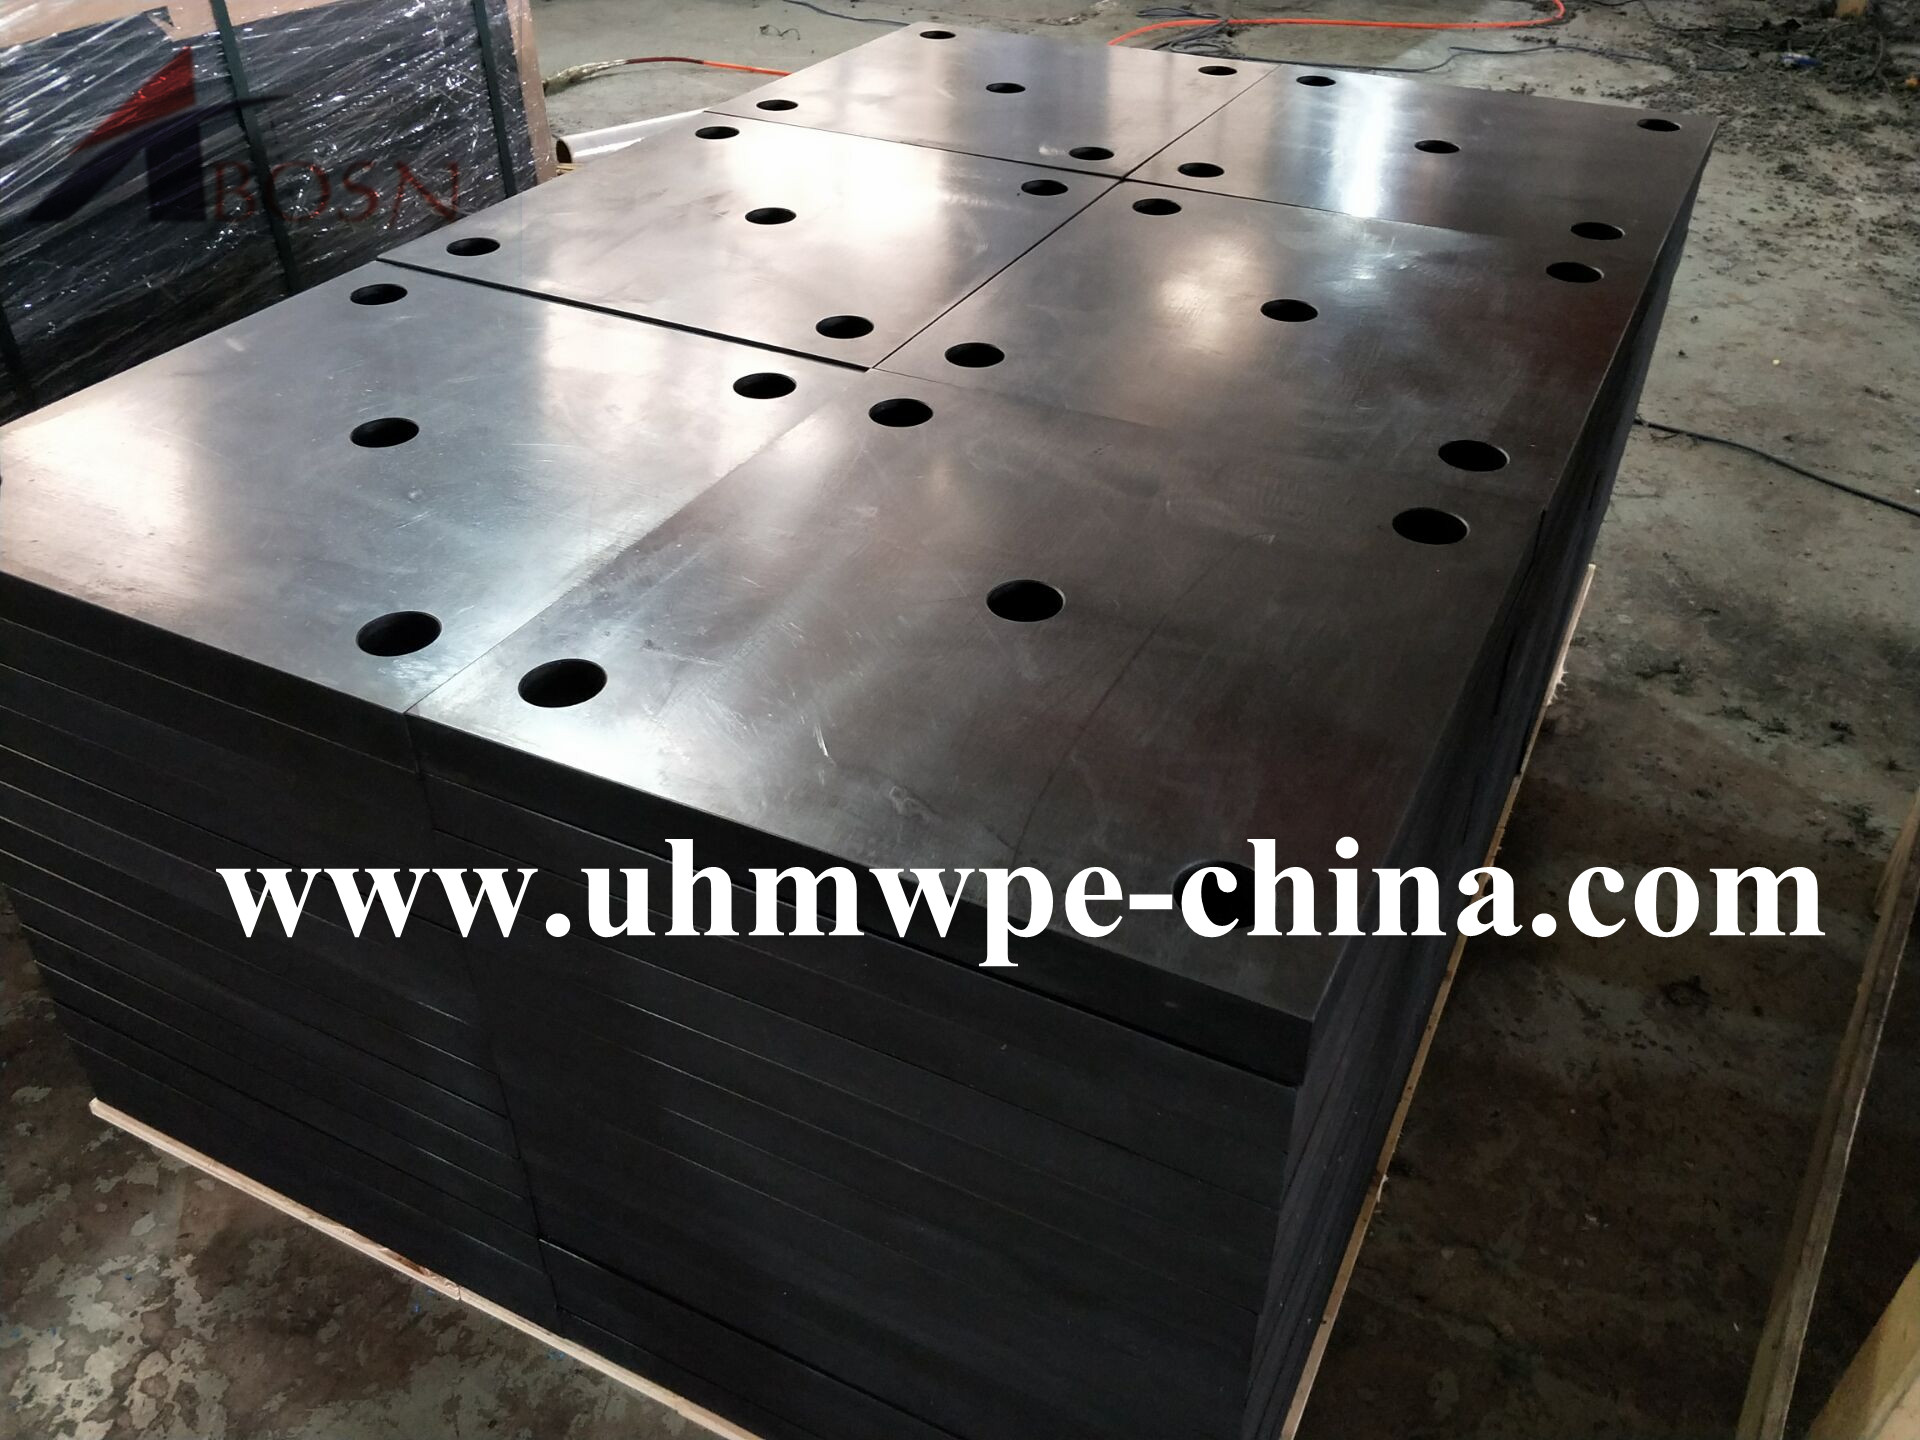 500x500mm Black UHMWPE Fender Pad